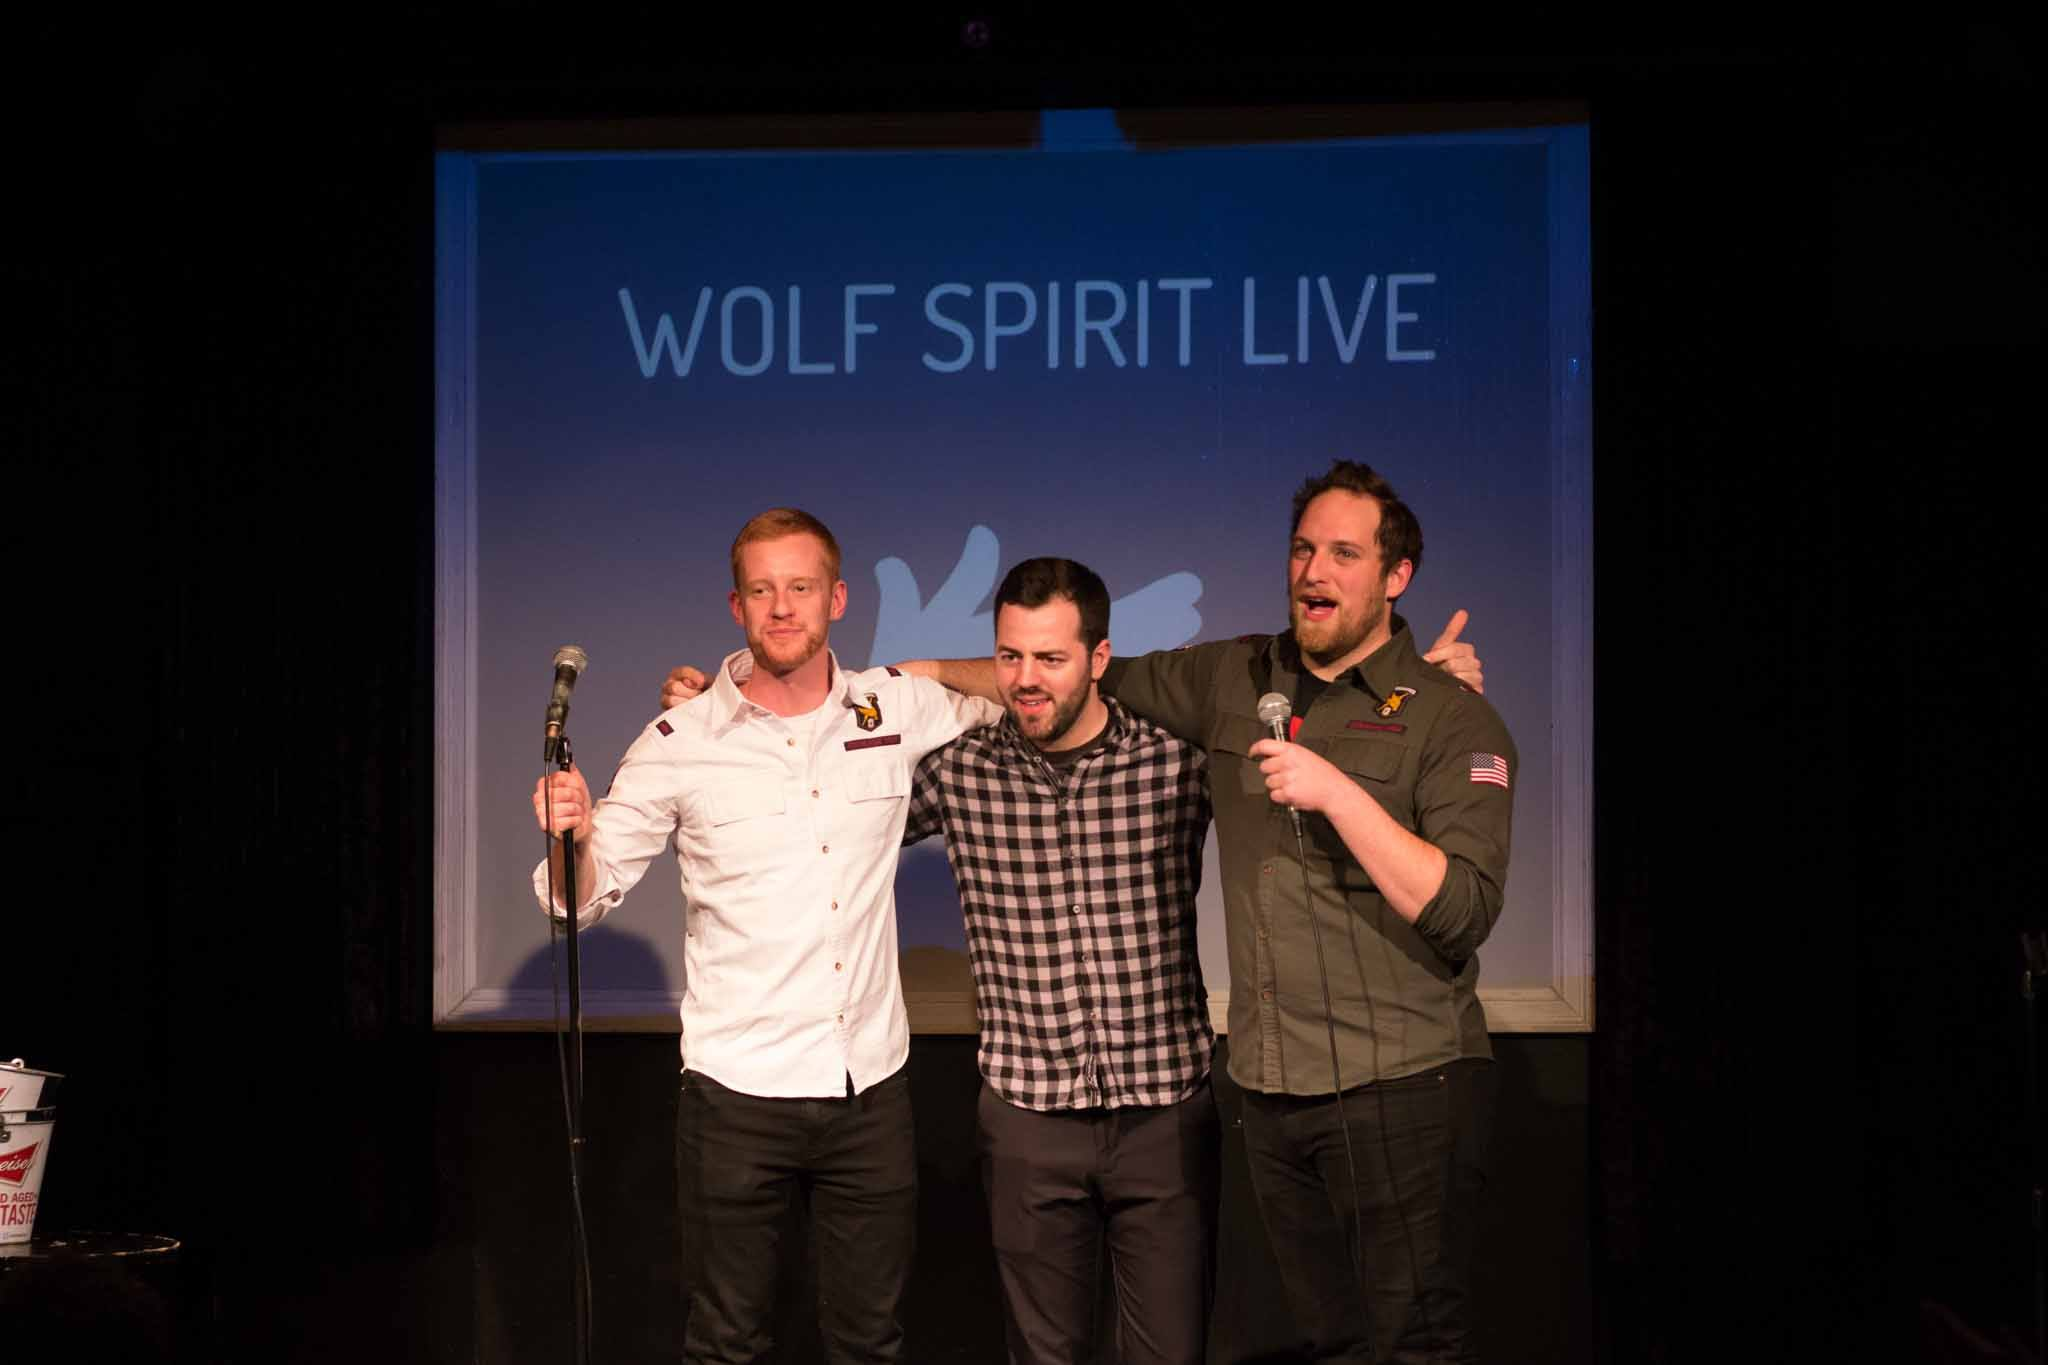 Wolf Spirit Live - Tom Matt Keele